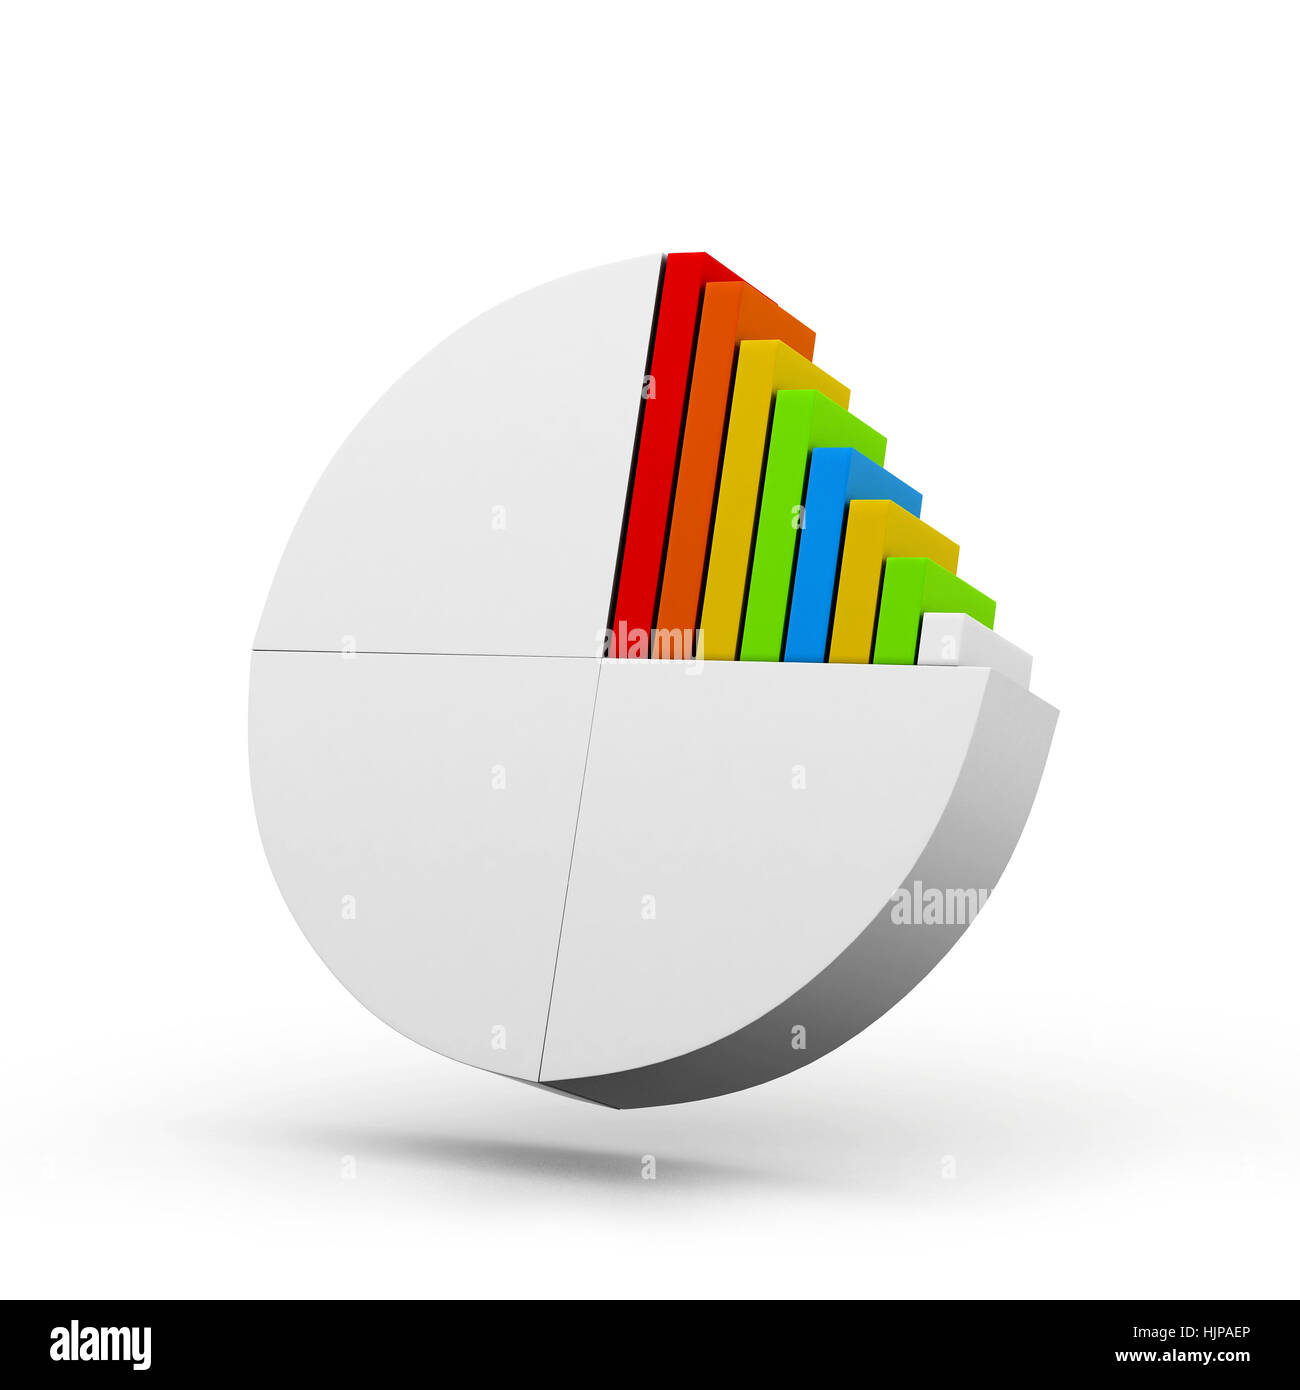 3d pie chart with bar graph stock photo royalty free image 3d pie chart with bar graph nvjuhfo Choice Image